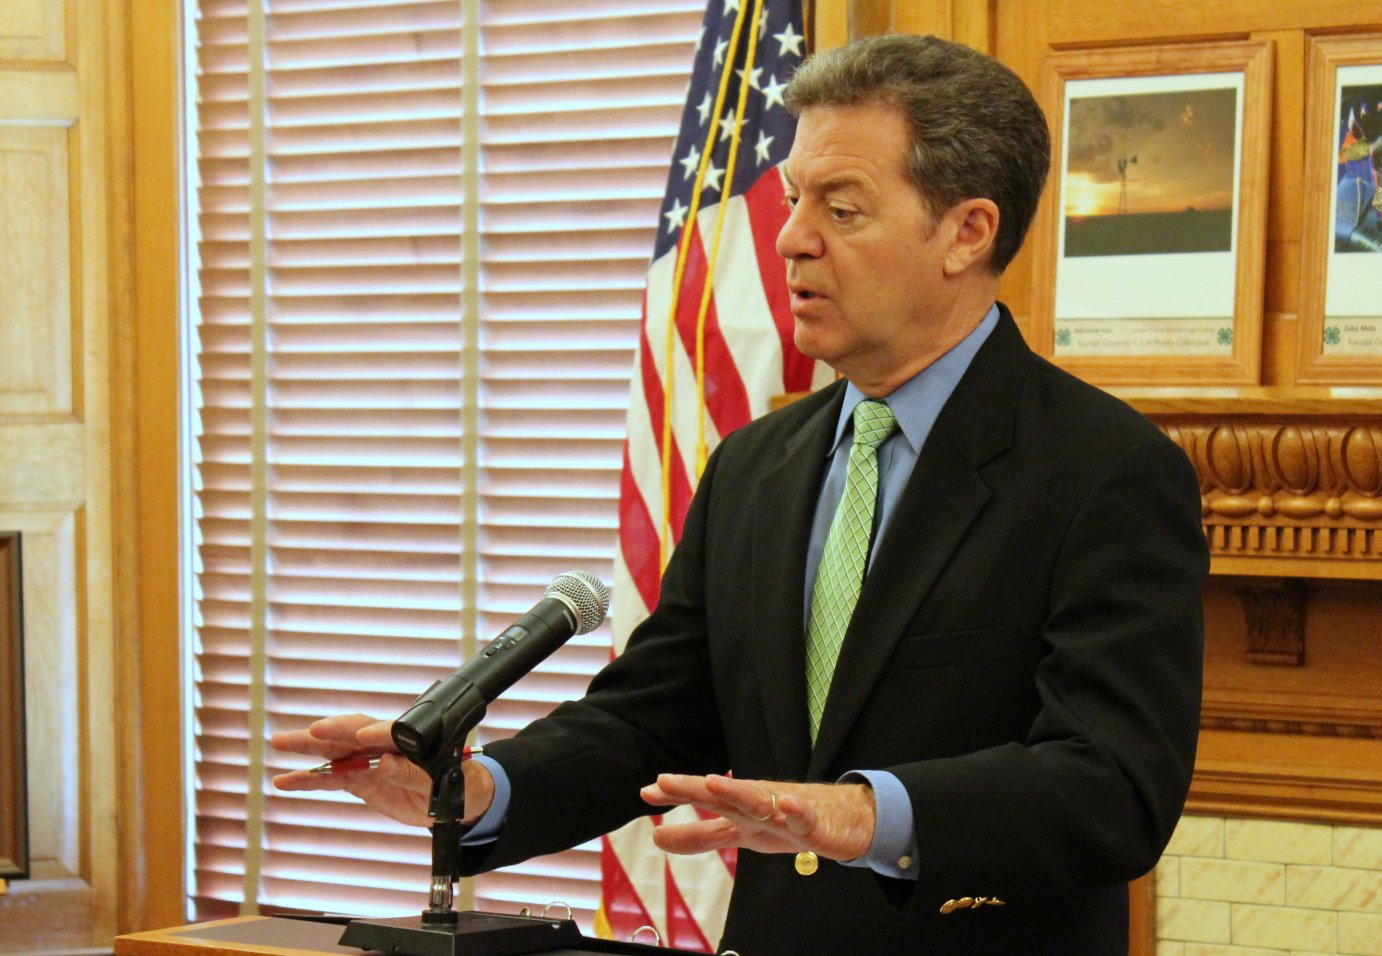 Governor Sam Brownback speaking last year. (Photo by Stephen Koranda)